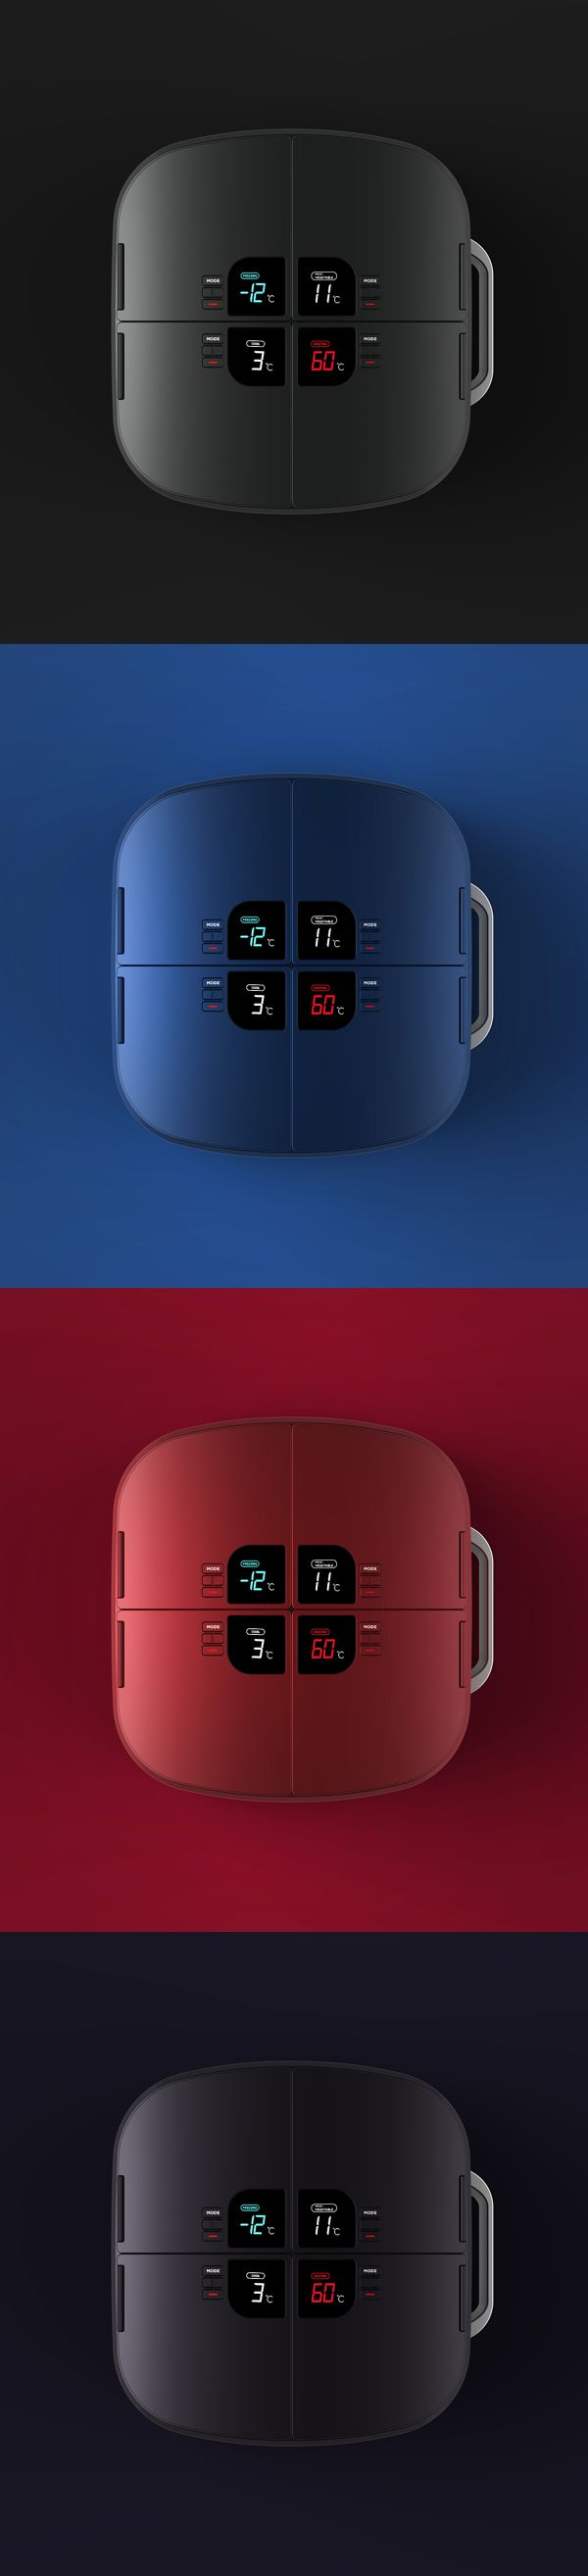 GOURMATE by Jongha Lee, via Behance